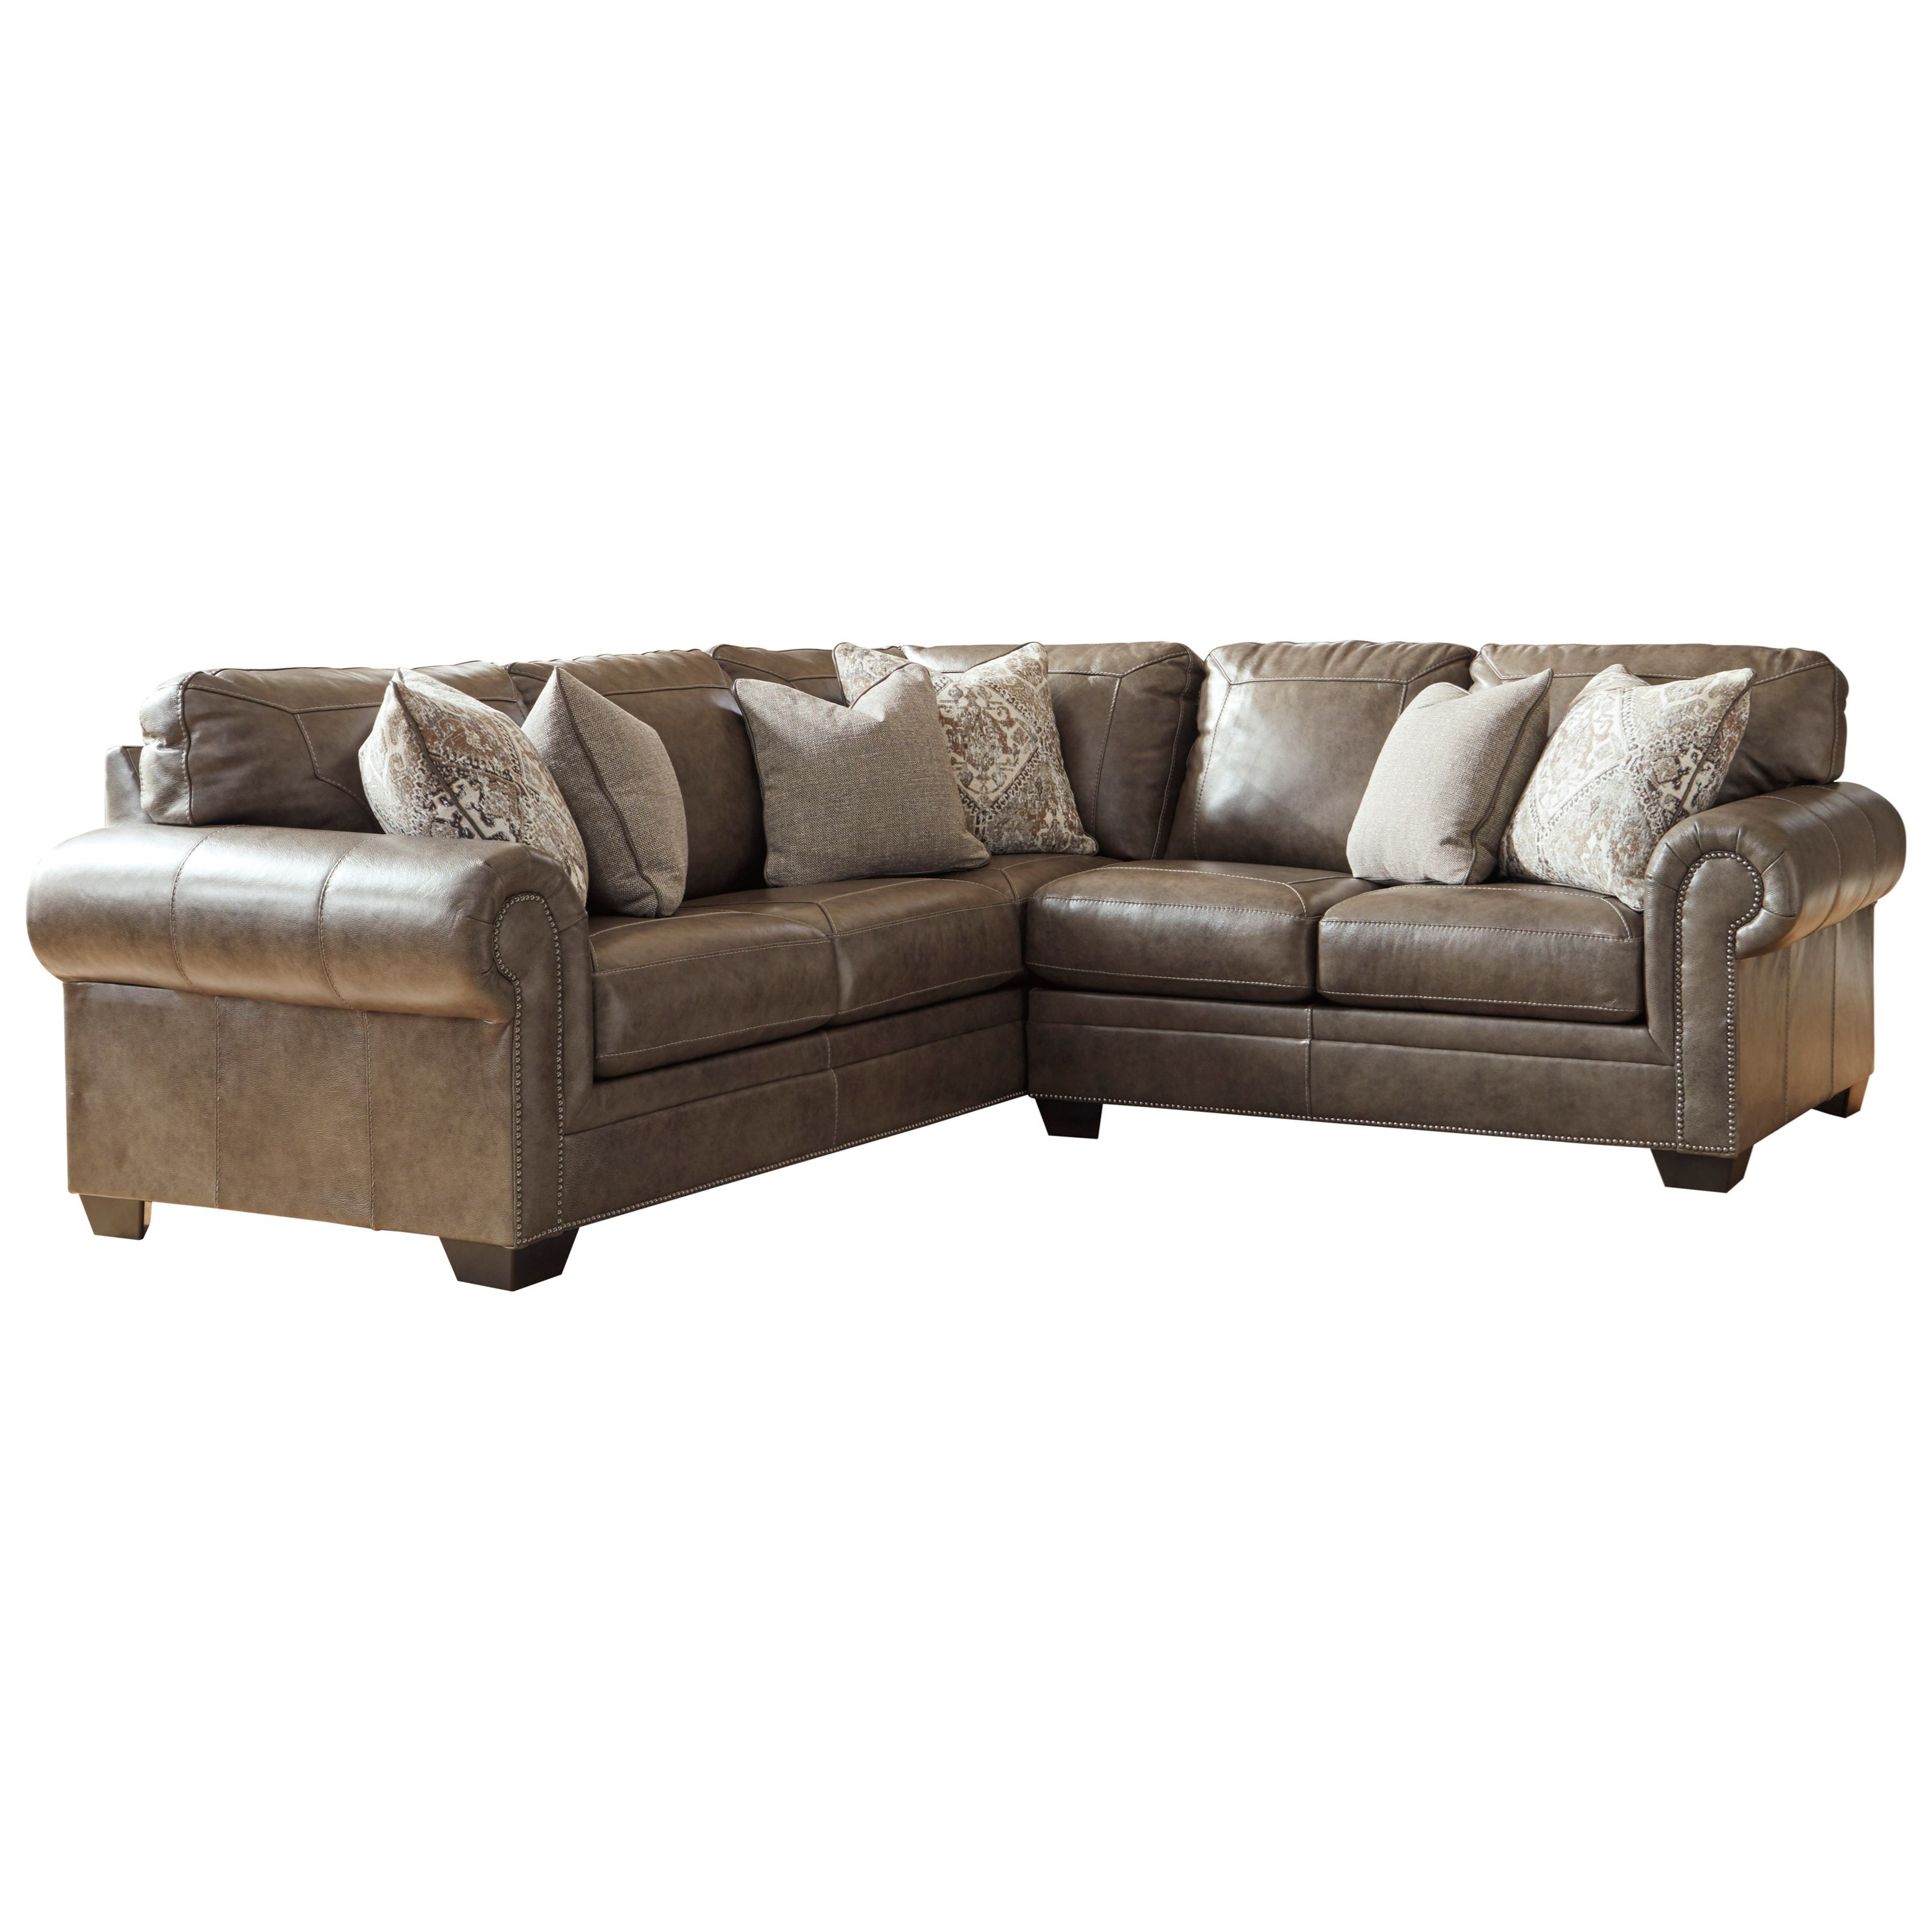 Roleson 2-Piece Sectional by Signature Design by Ashley at Northeast Factory Direct